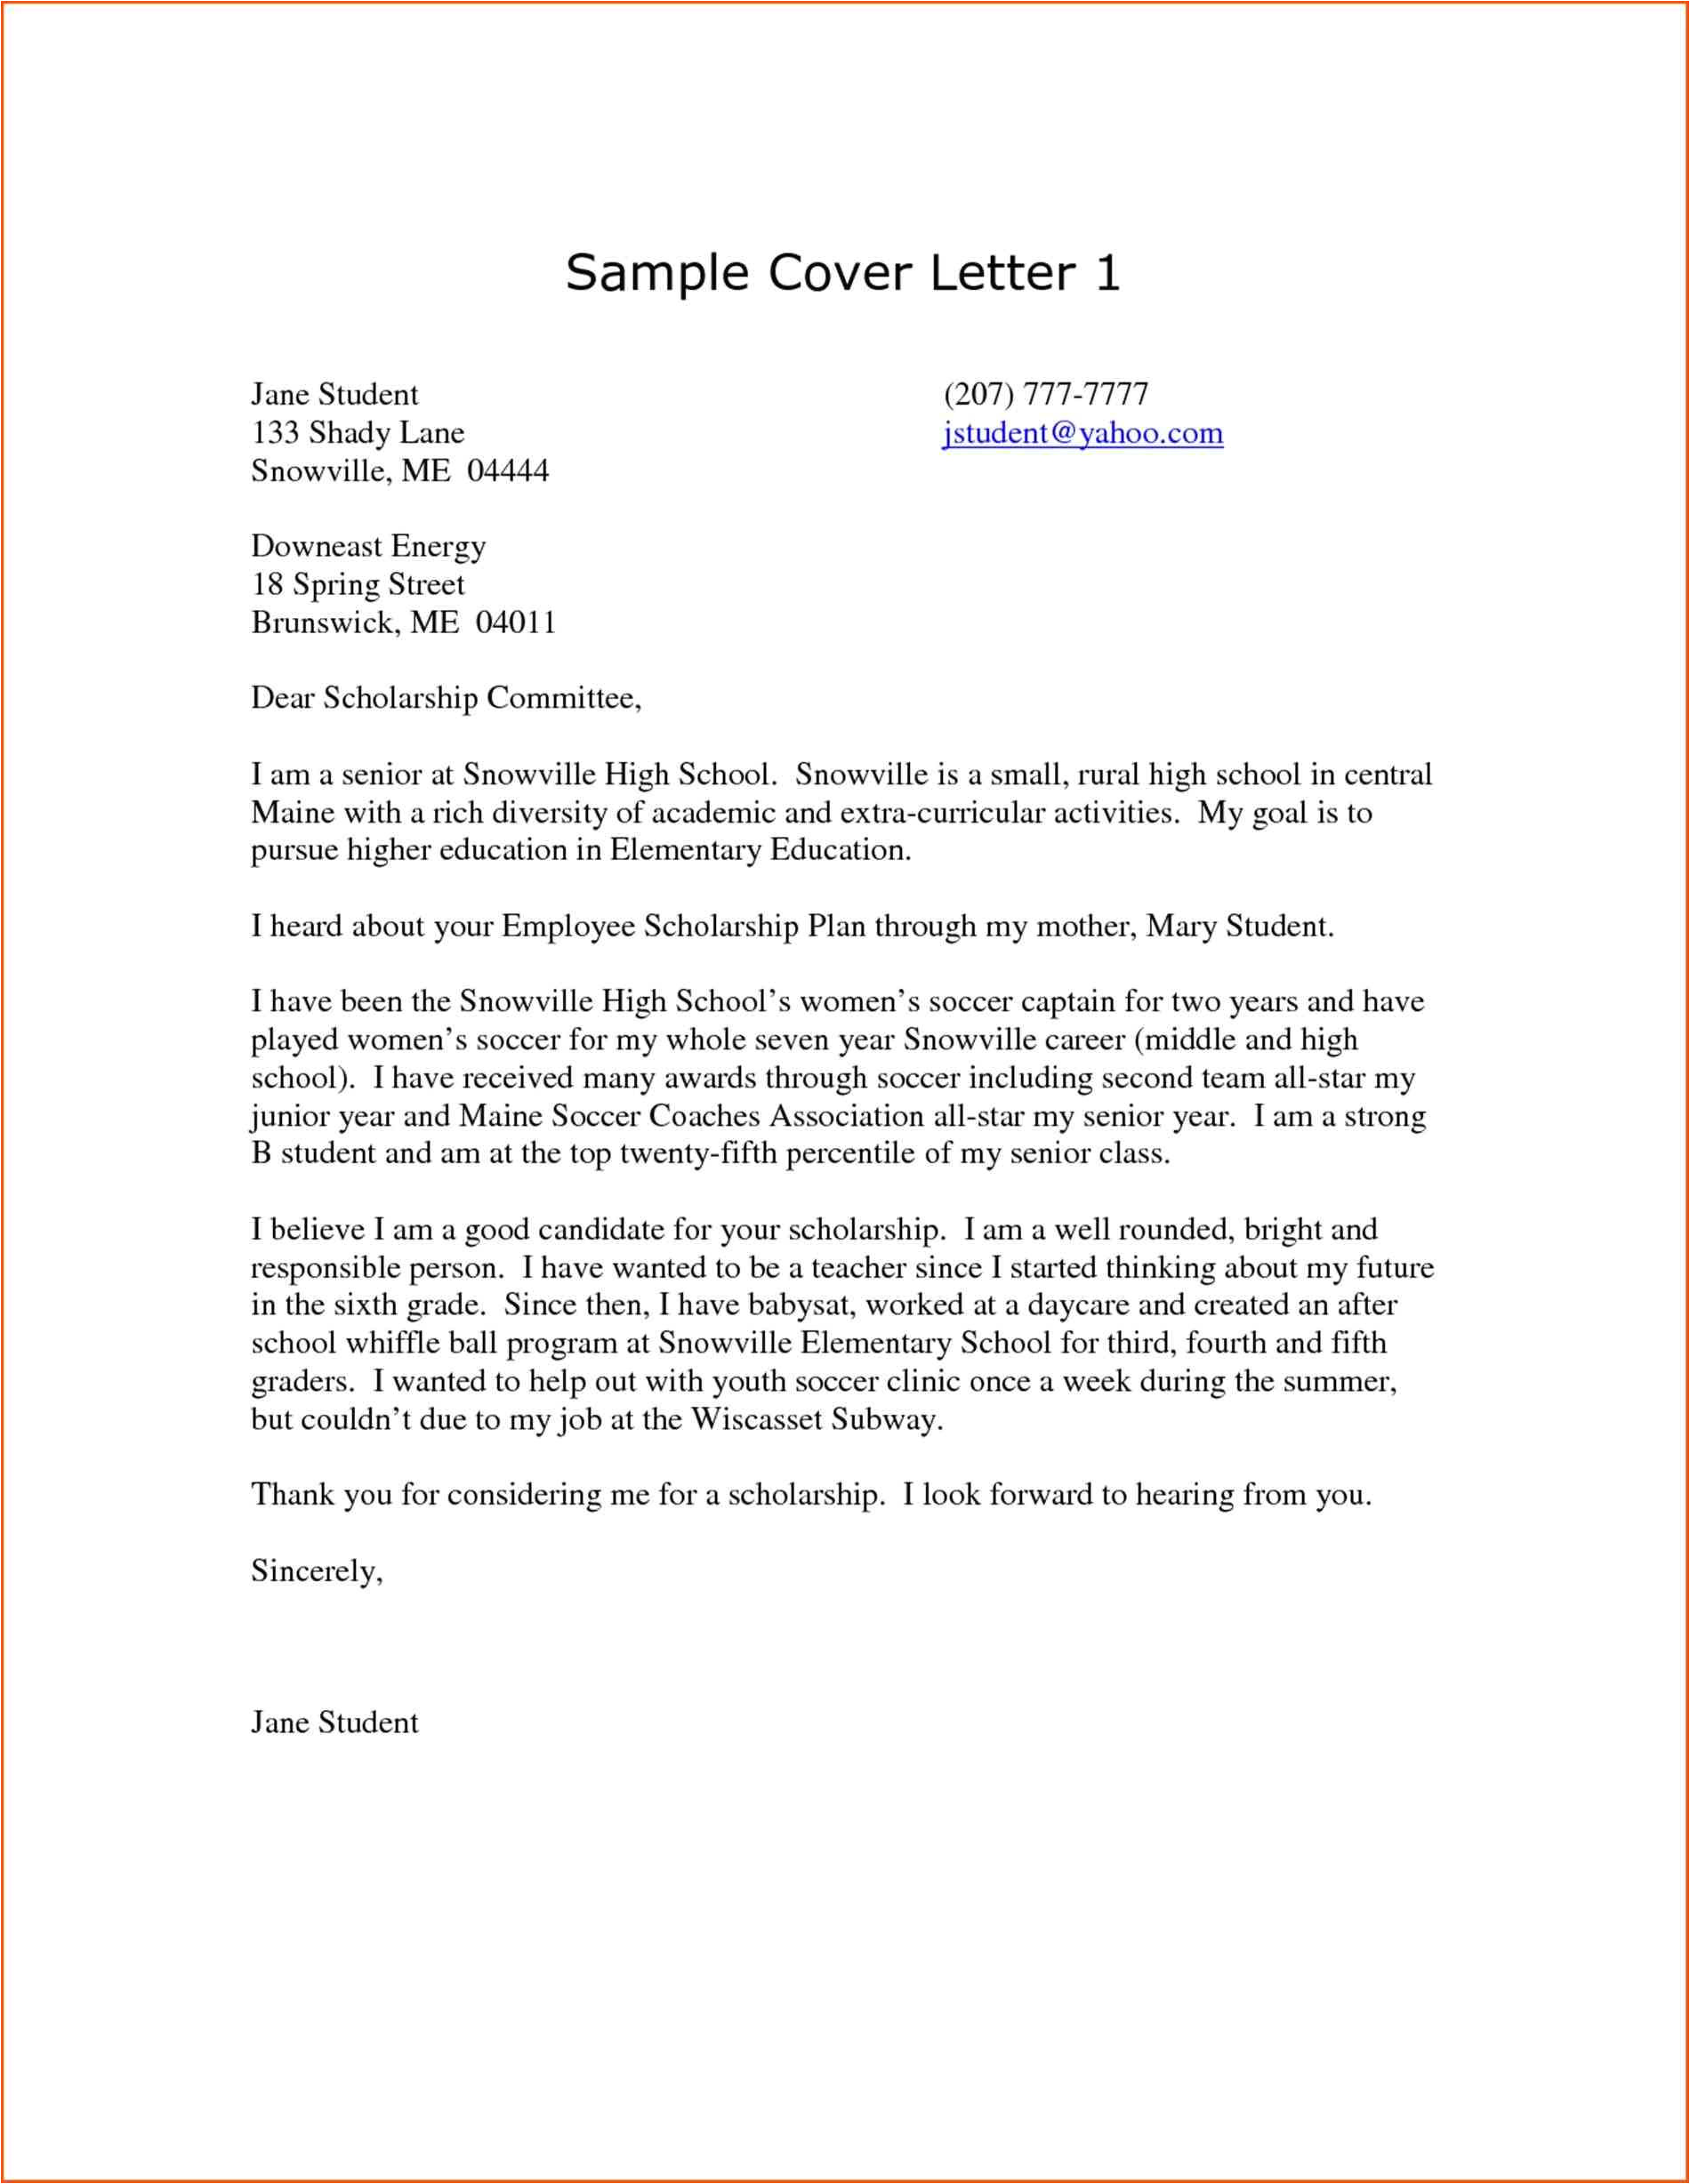 Examples Of Cover Letters for High School Students High School Student Cover Letter Template Mayamokacomm